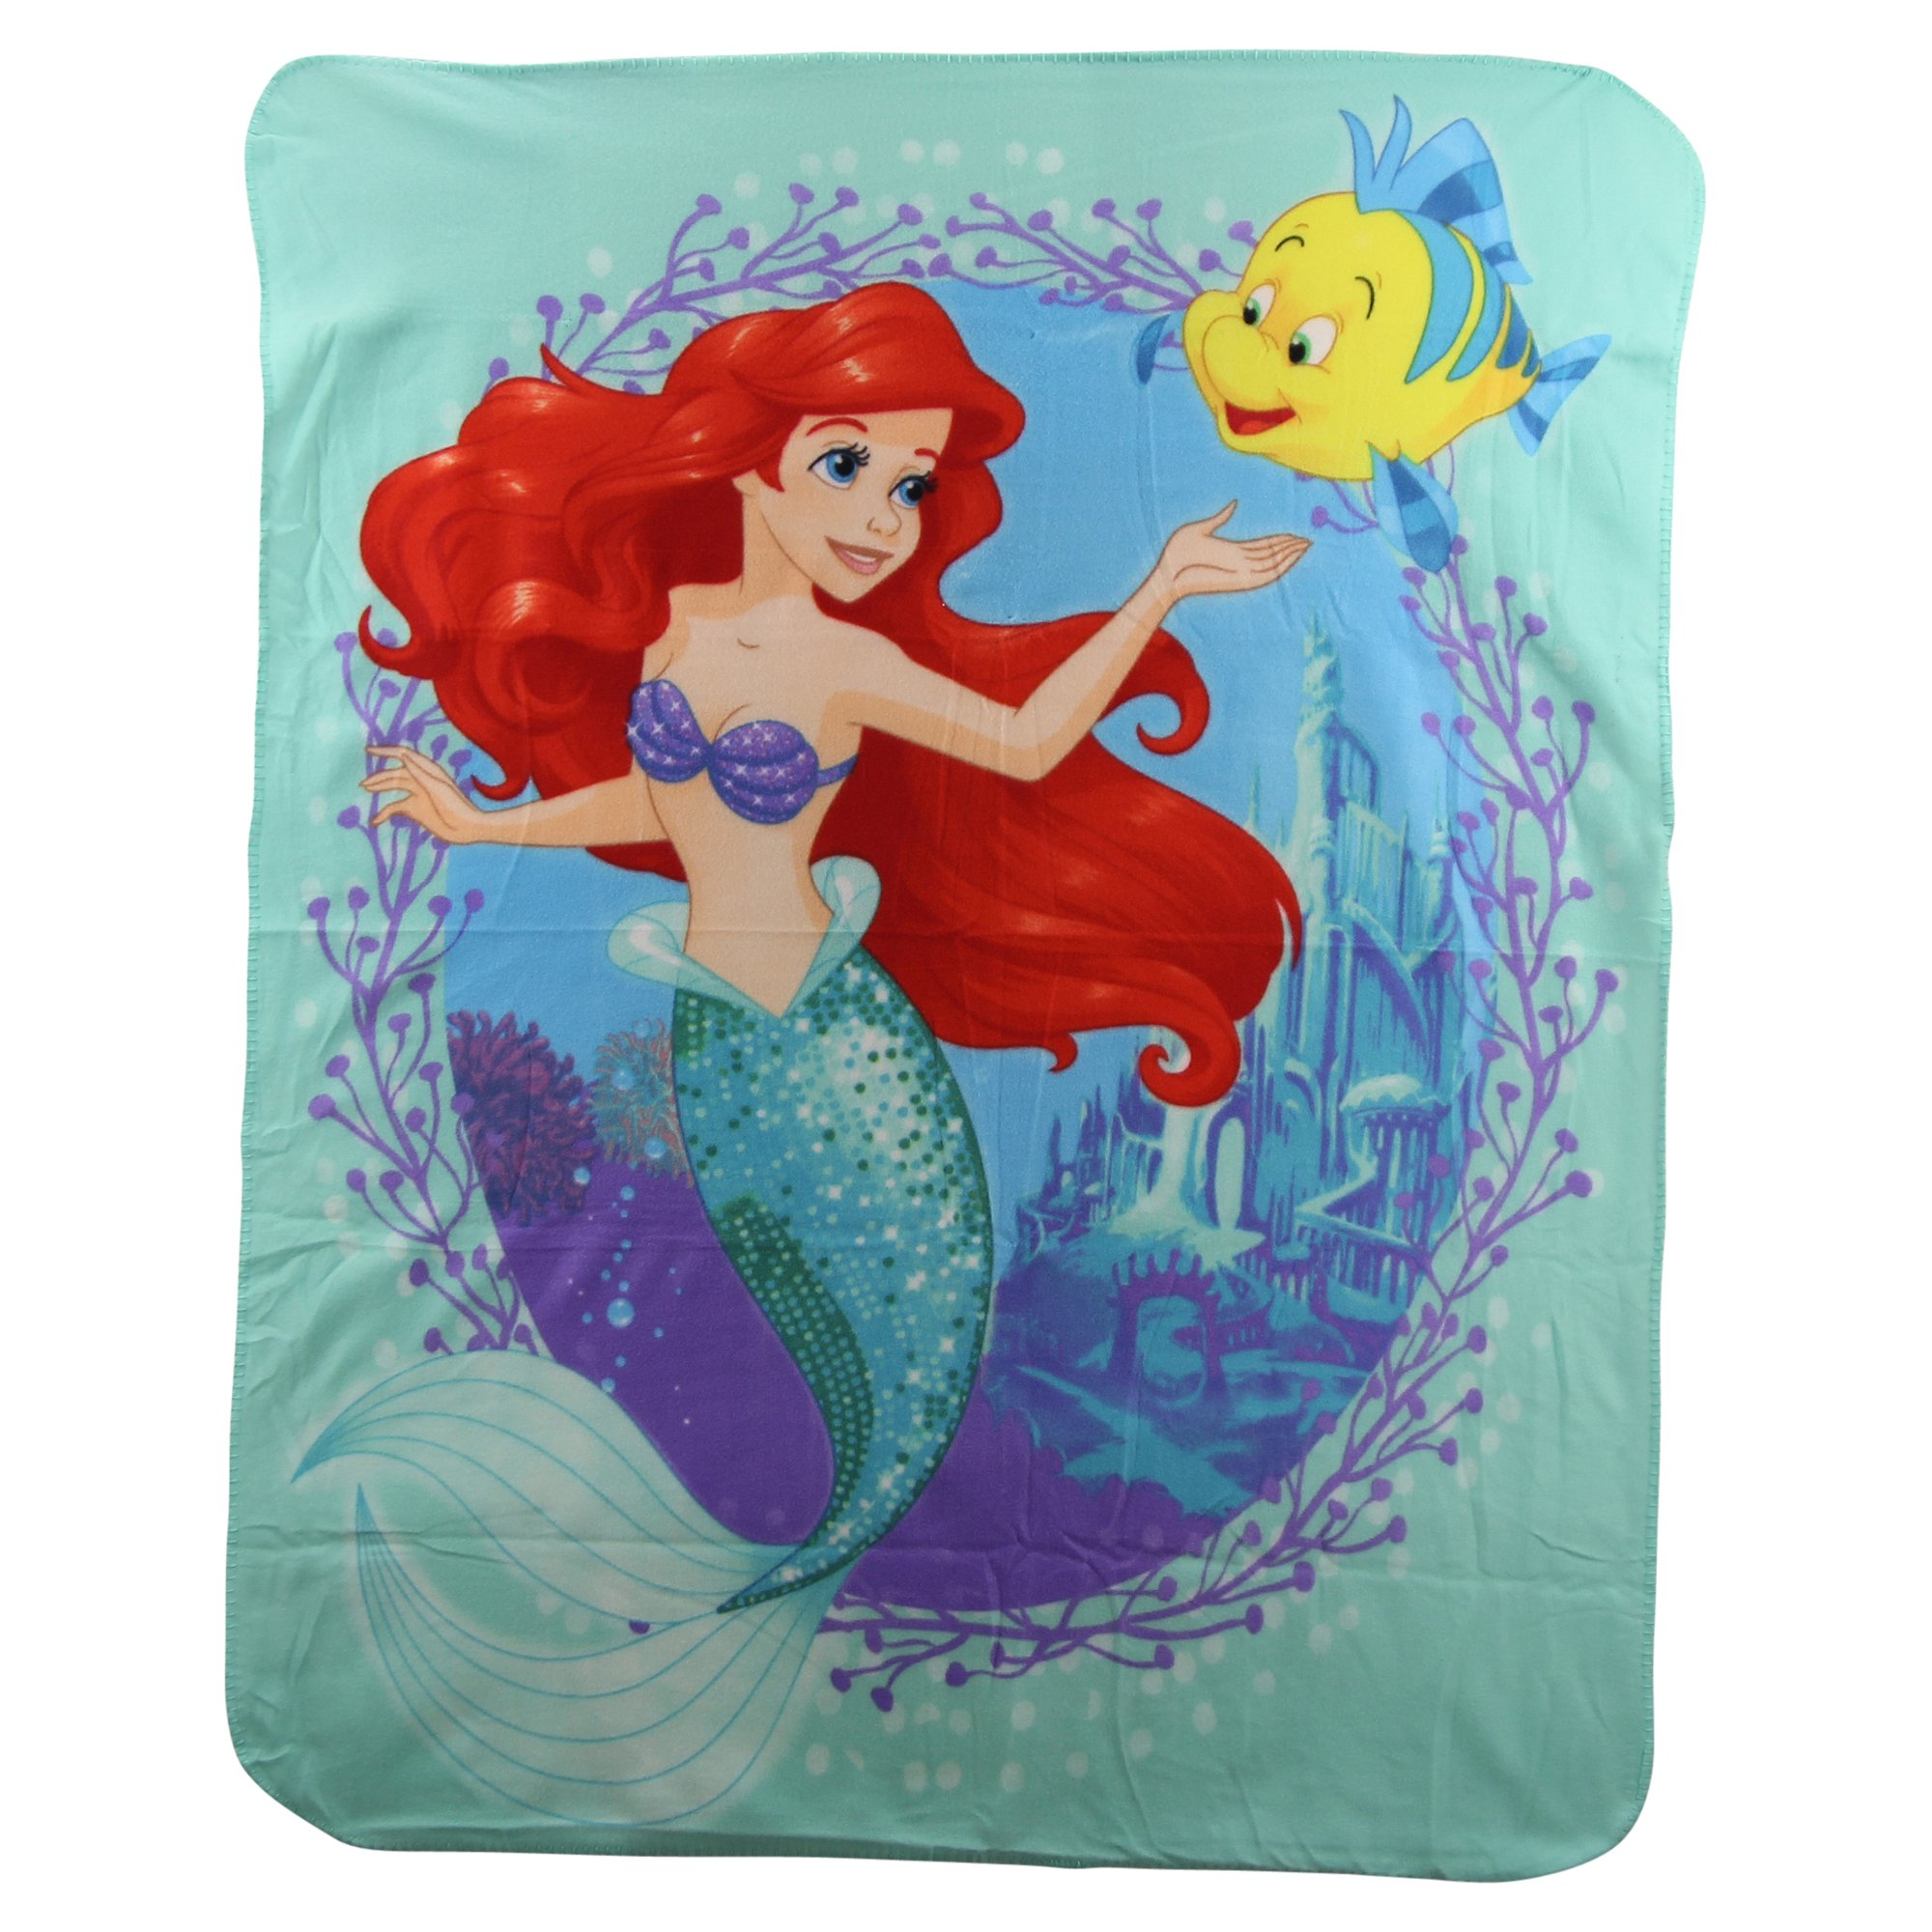 S.L. Home Fashions Little Mermaid Ariel & Flounder Kids Character Lightweight Fleece Throw Blanket by S.L. Home Fashions